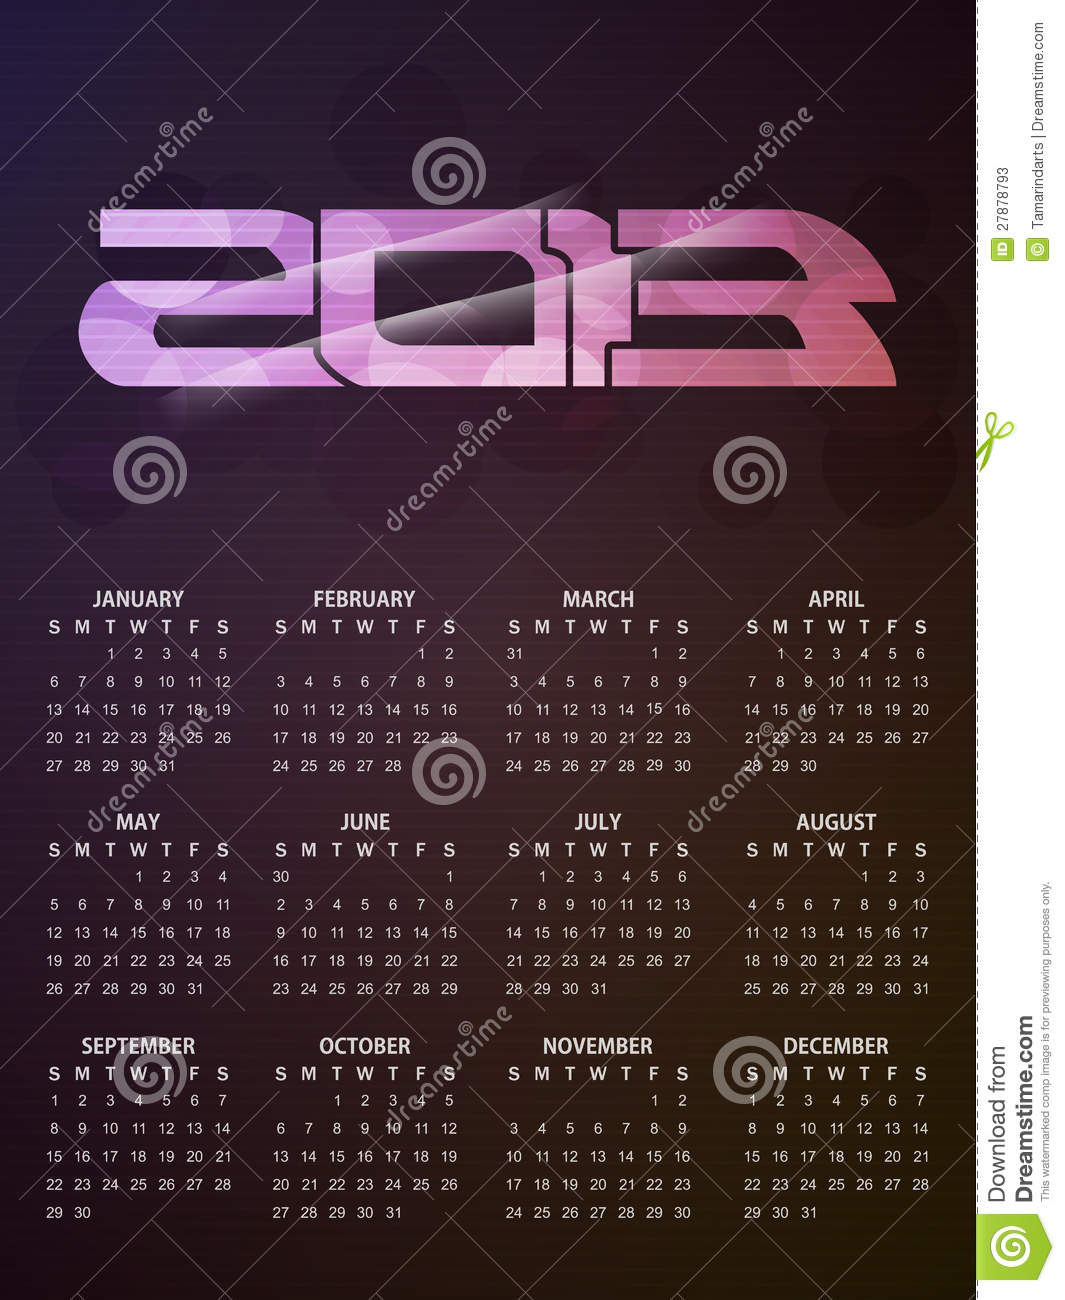 Beautiful Calendar Design : Beautiful calendar design for stock photos image